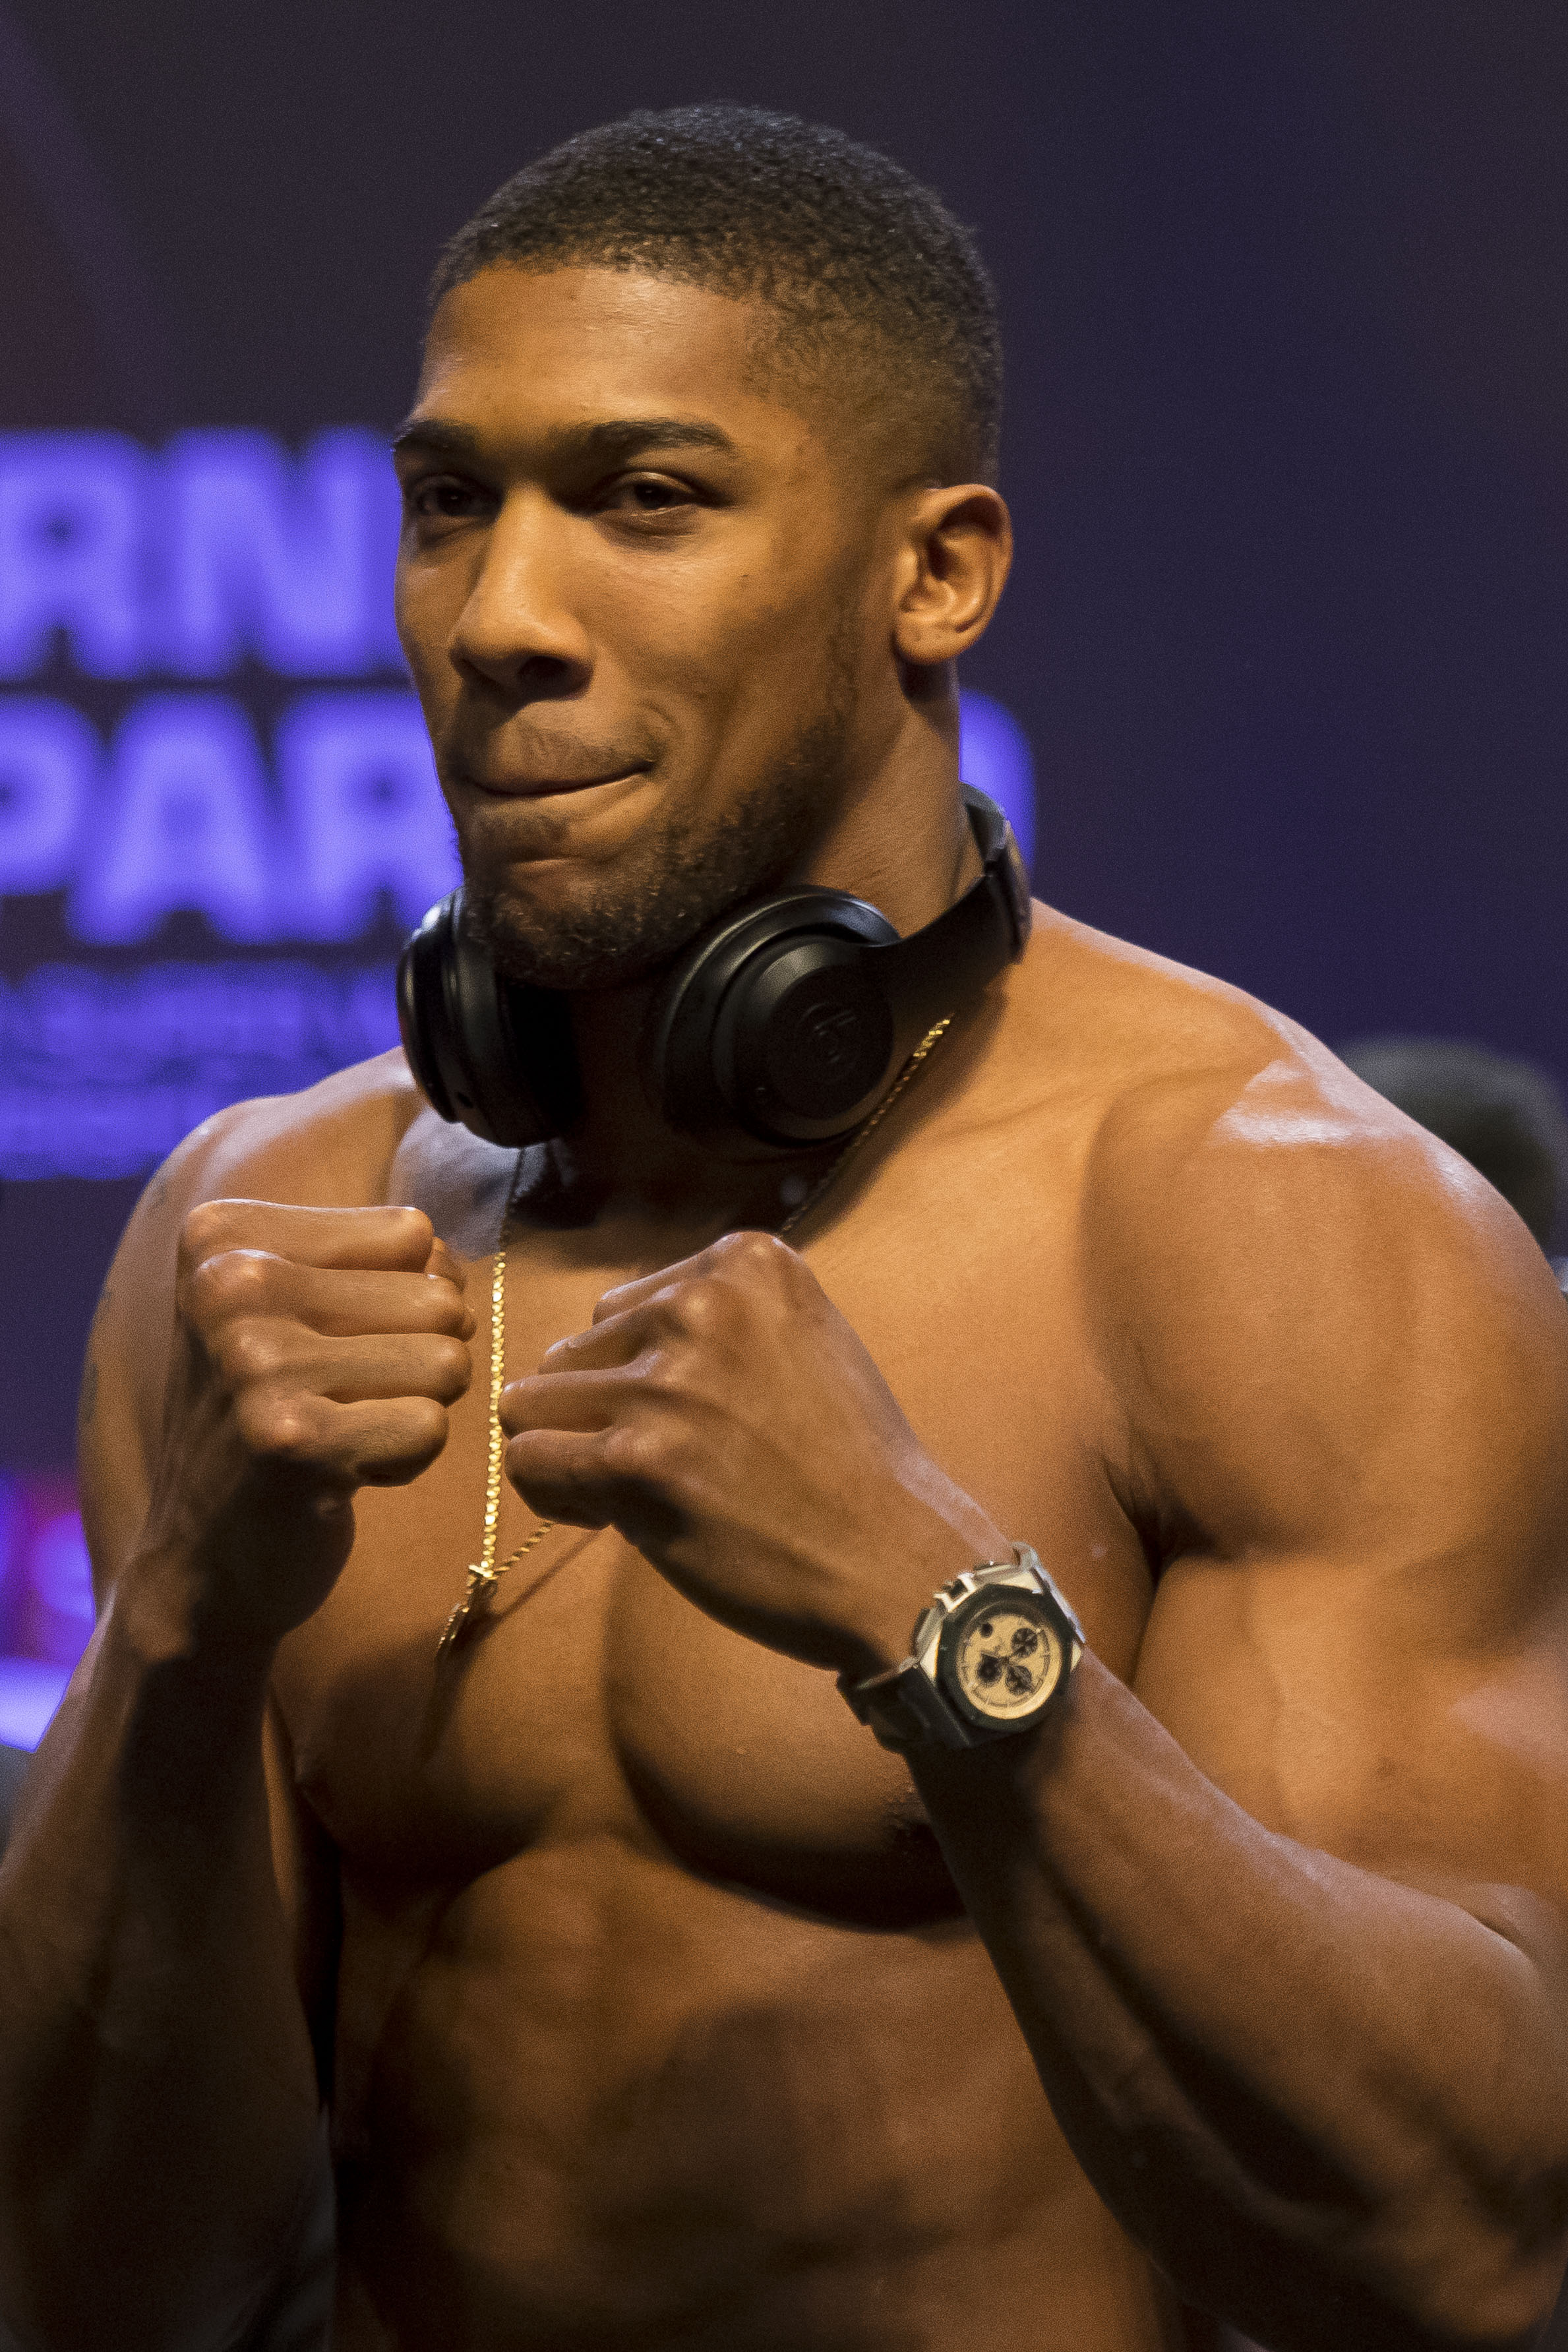 CARDIFF, WALES - MARCH 30: Anthony Joshua poses for the cameras during the weigh-in at the Motorpoint Arena on March 30, 2018 in Cardiff, Wales. Anthony Joshua will fight Joseph Parker in a heavyweight unification match at the Principality Stadium in Cardiff on March 31. (Photo by Matthew Horwood/Getty Images)